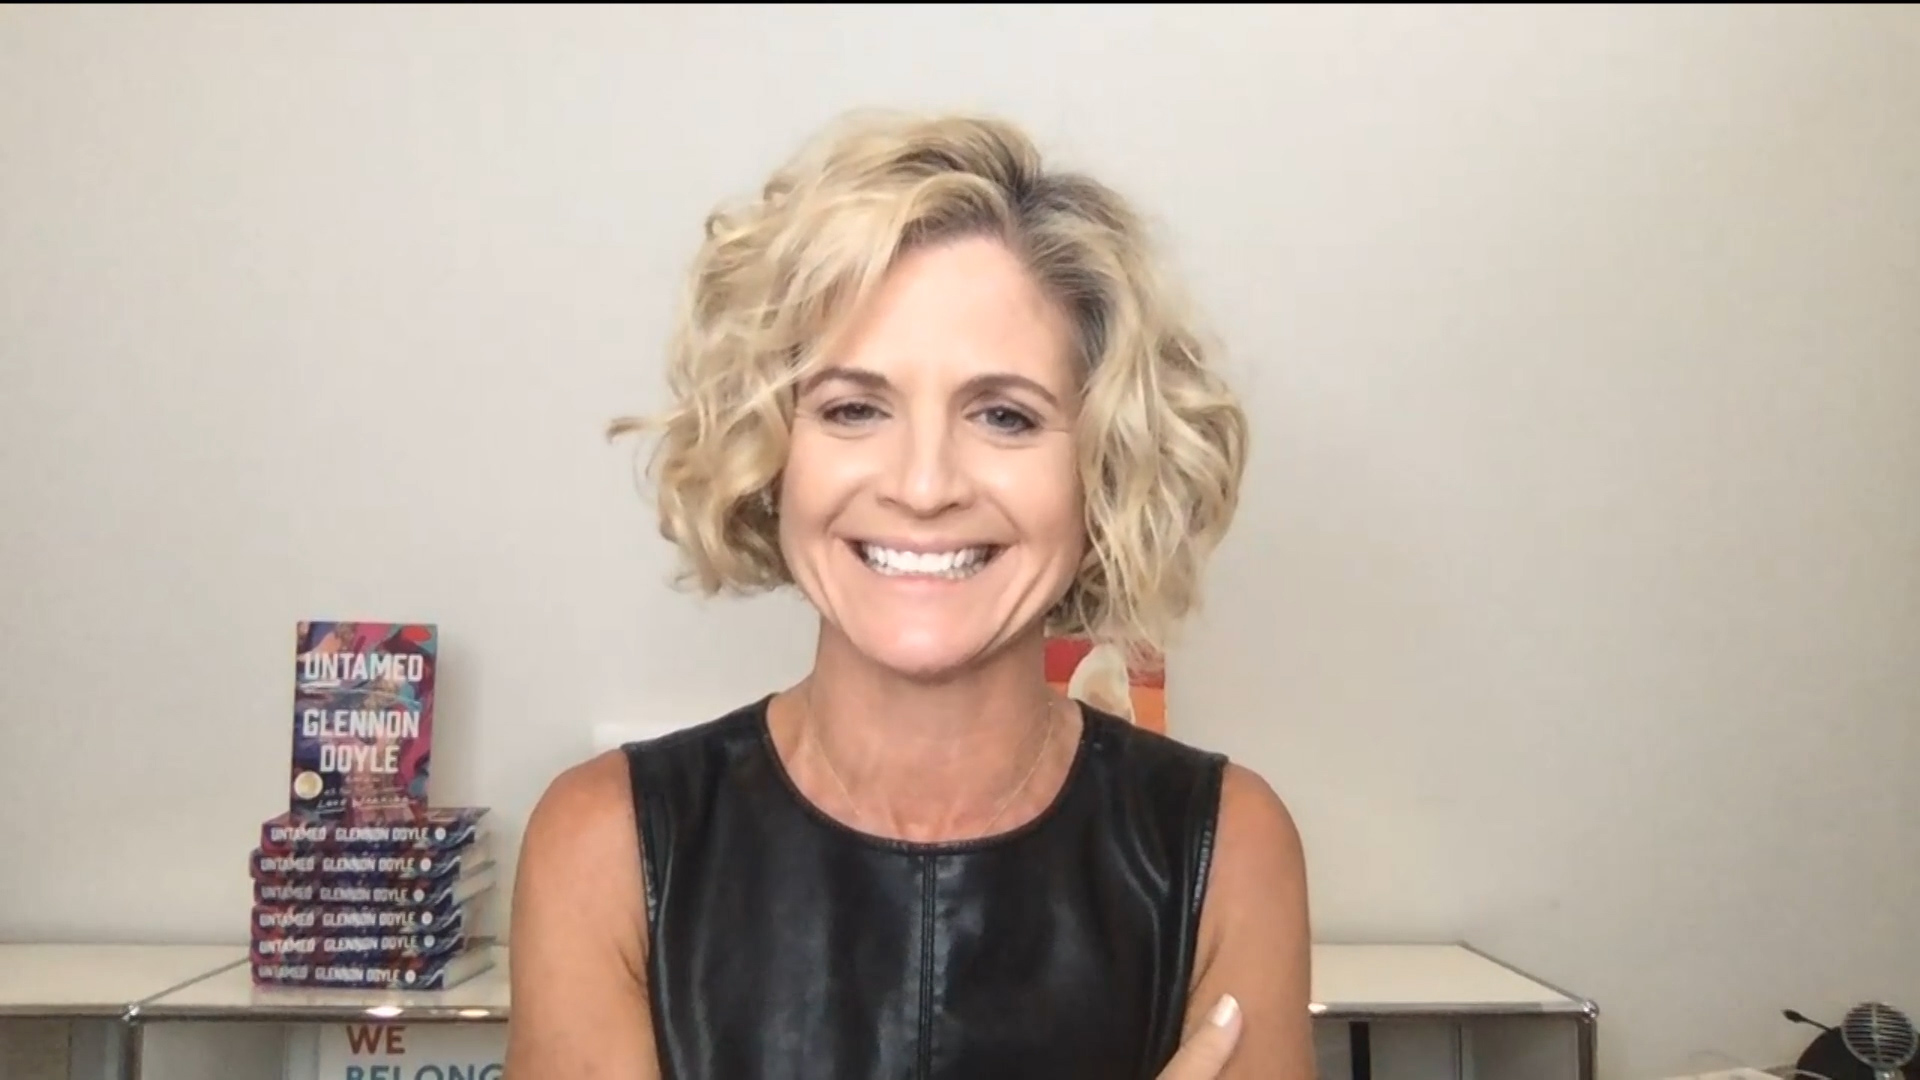 Glennon Doyle's Advice for the RHOC Wives